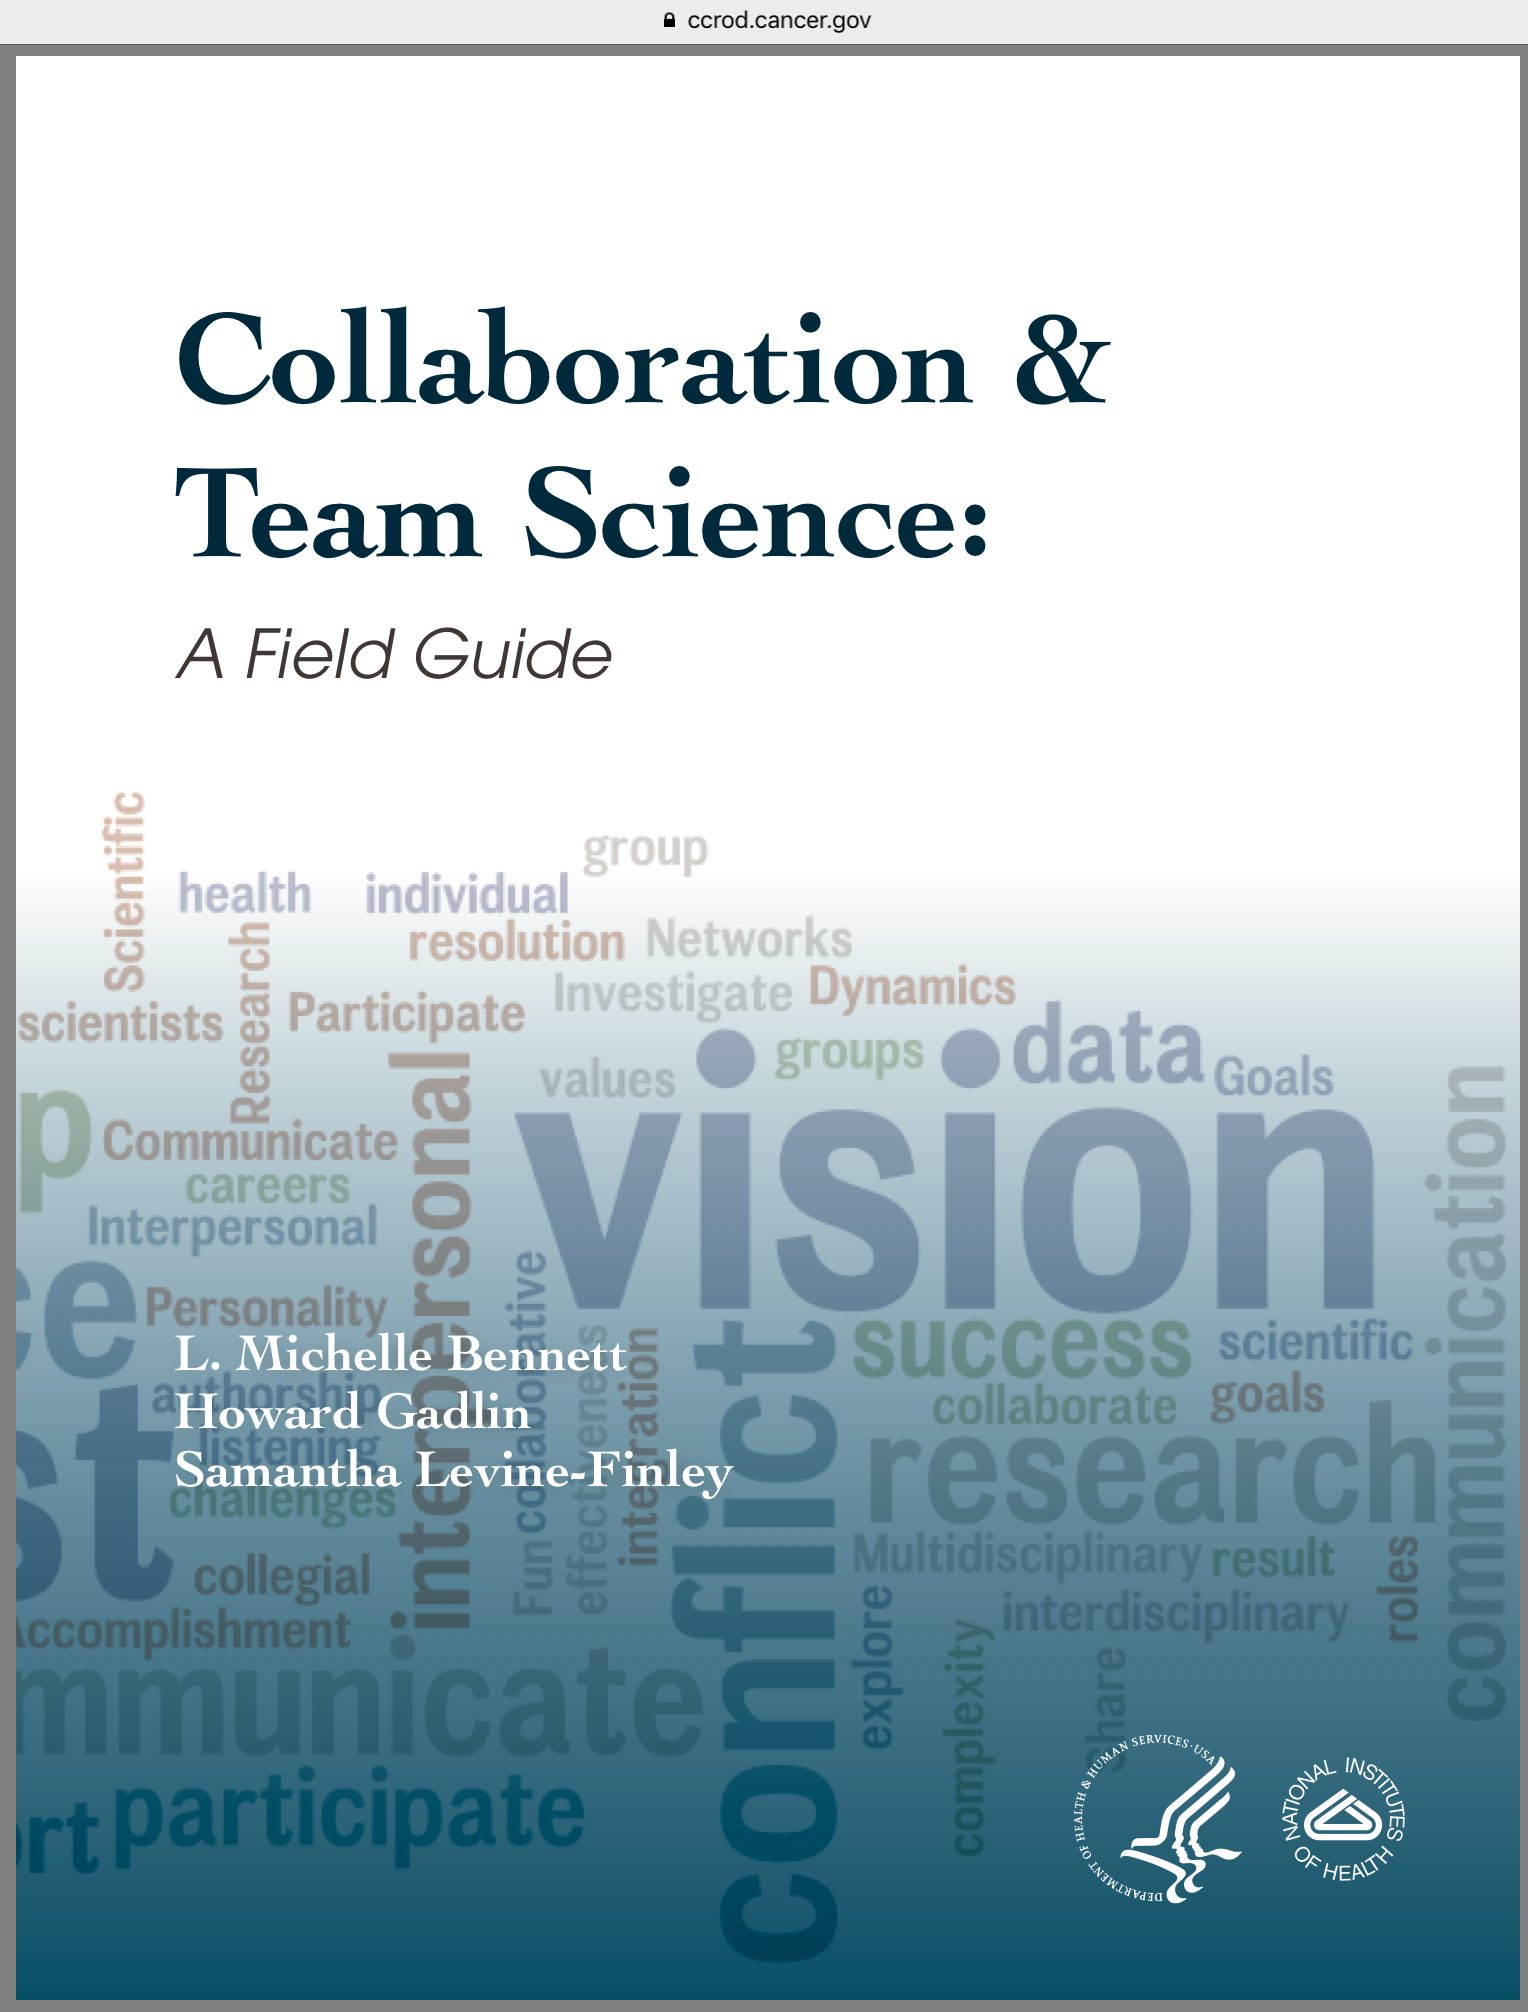 When I started as a PI, the excellent @NIH #TeamScience manual wasn't around, @baym. It's a must read for everyone: https://t.co/gsqV5I95jY https://t.co/be9pparUM6